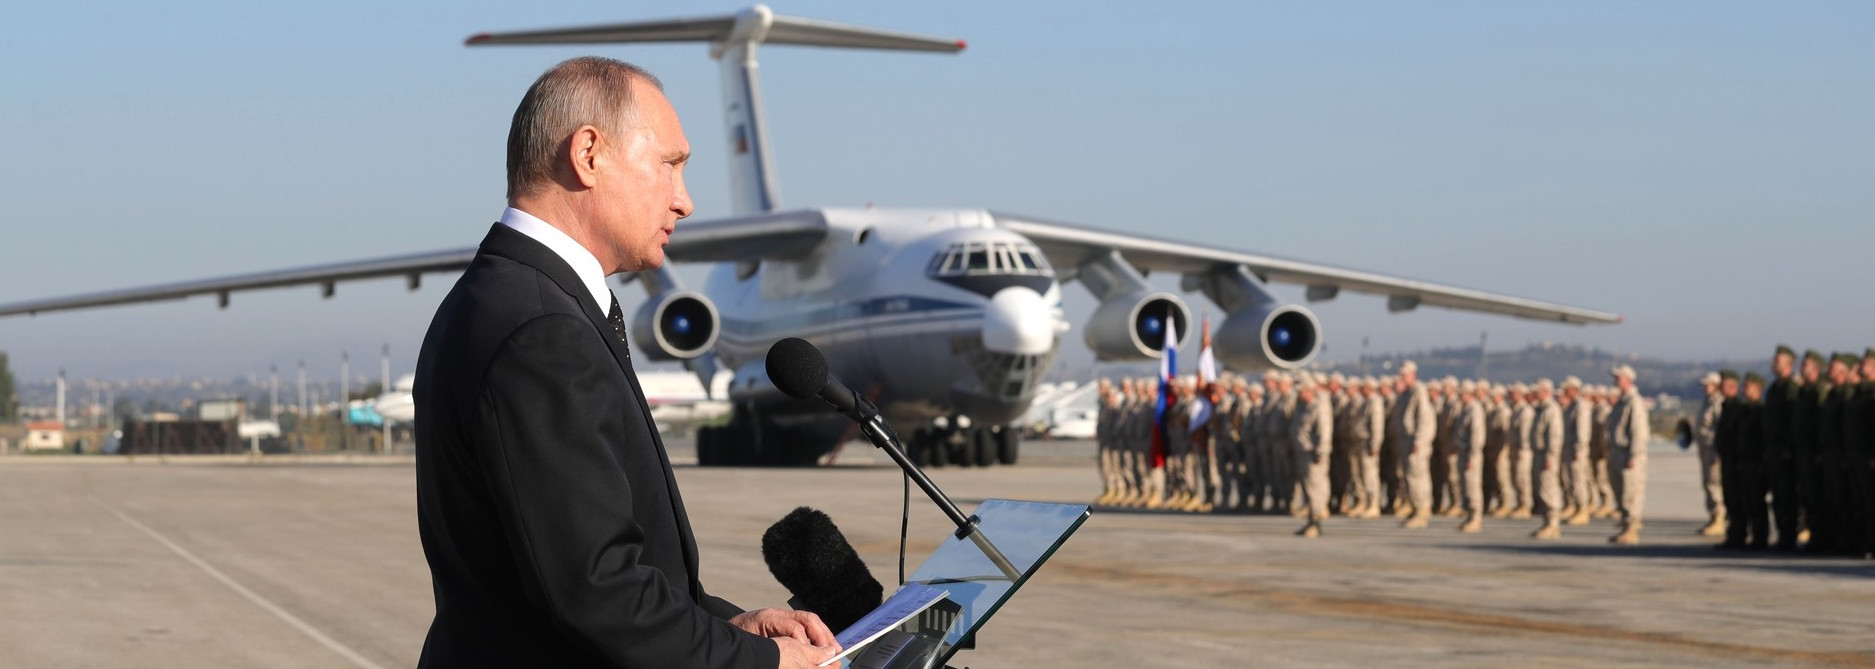 Russia's Vladimir Putin at Khmeimim air base in Syria on Monday (Photo: Kremlin.ru)